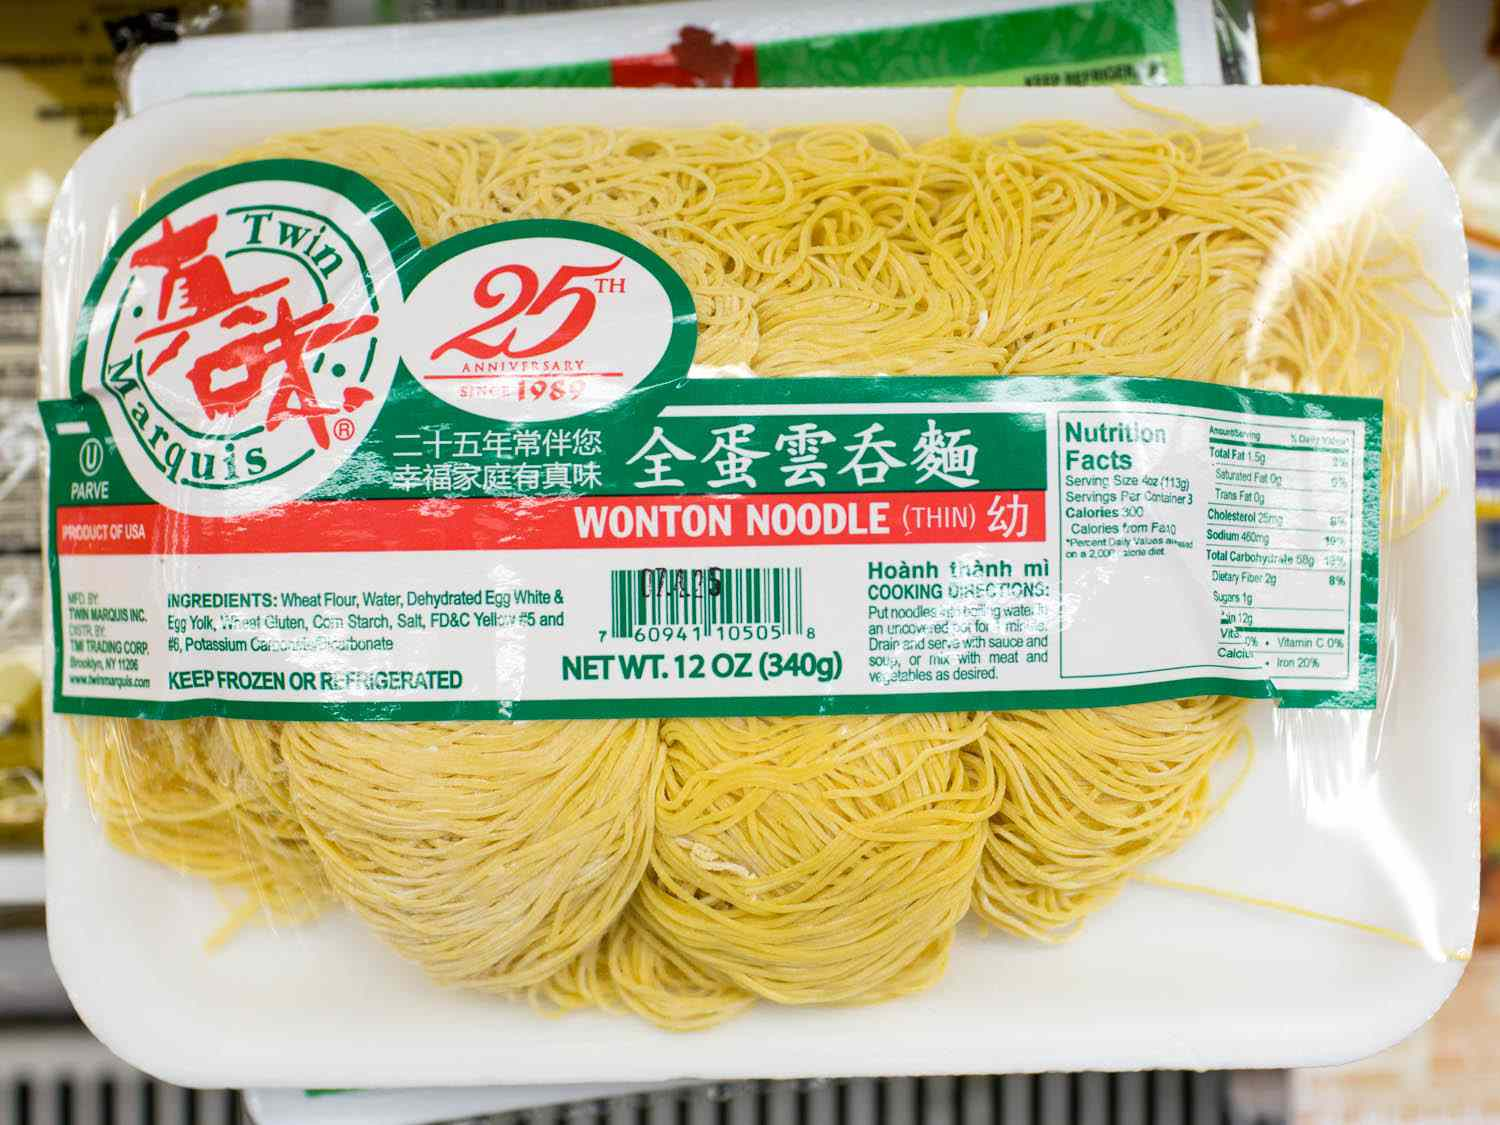 20140724-asian-noodle-guide-wonton-noodle-thin-vicky-wasik.jpg